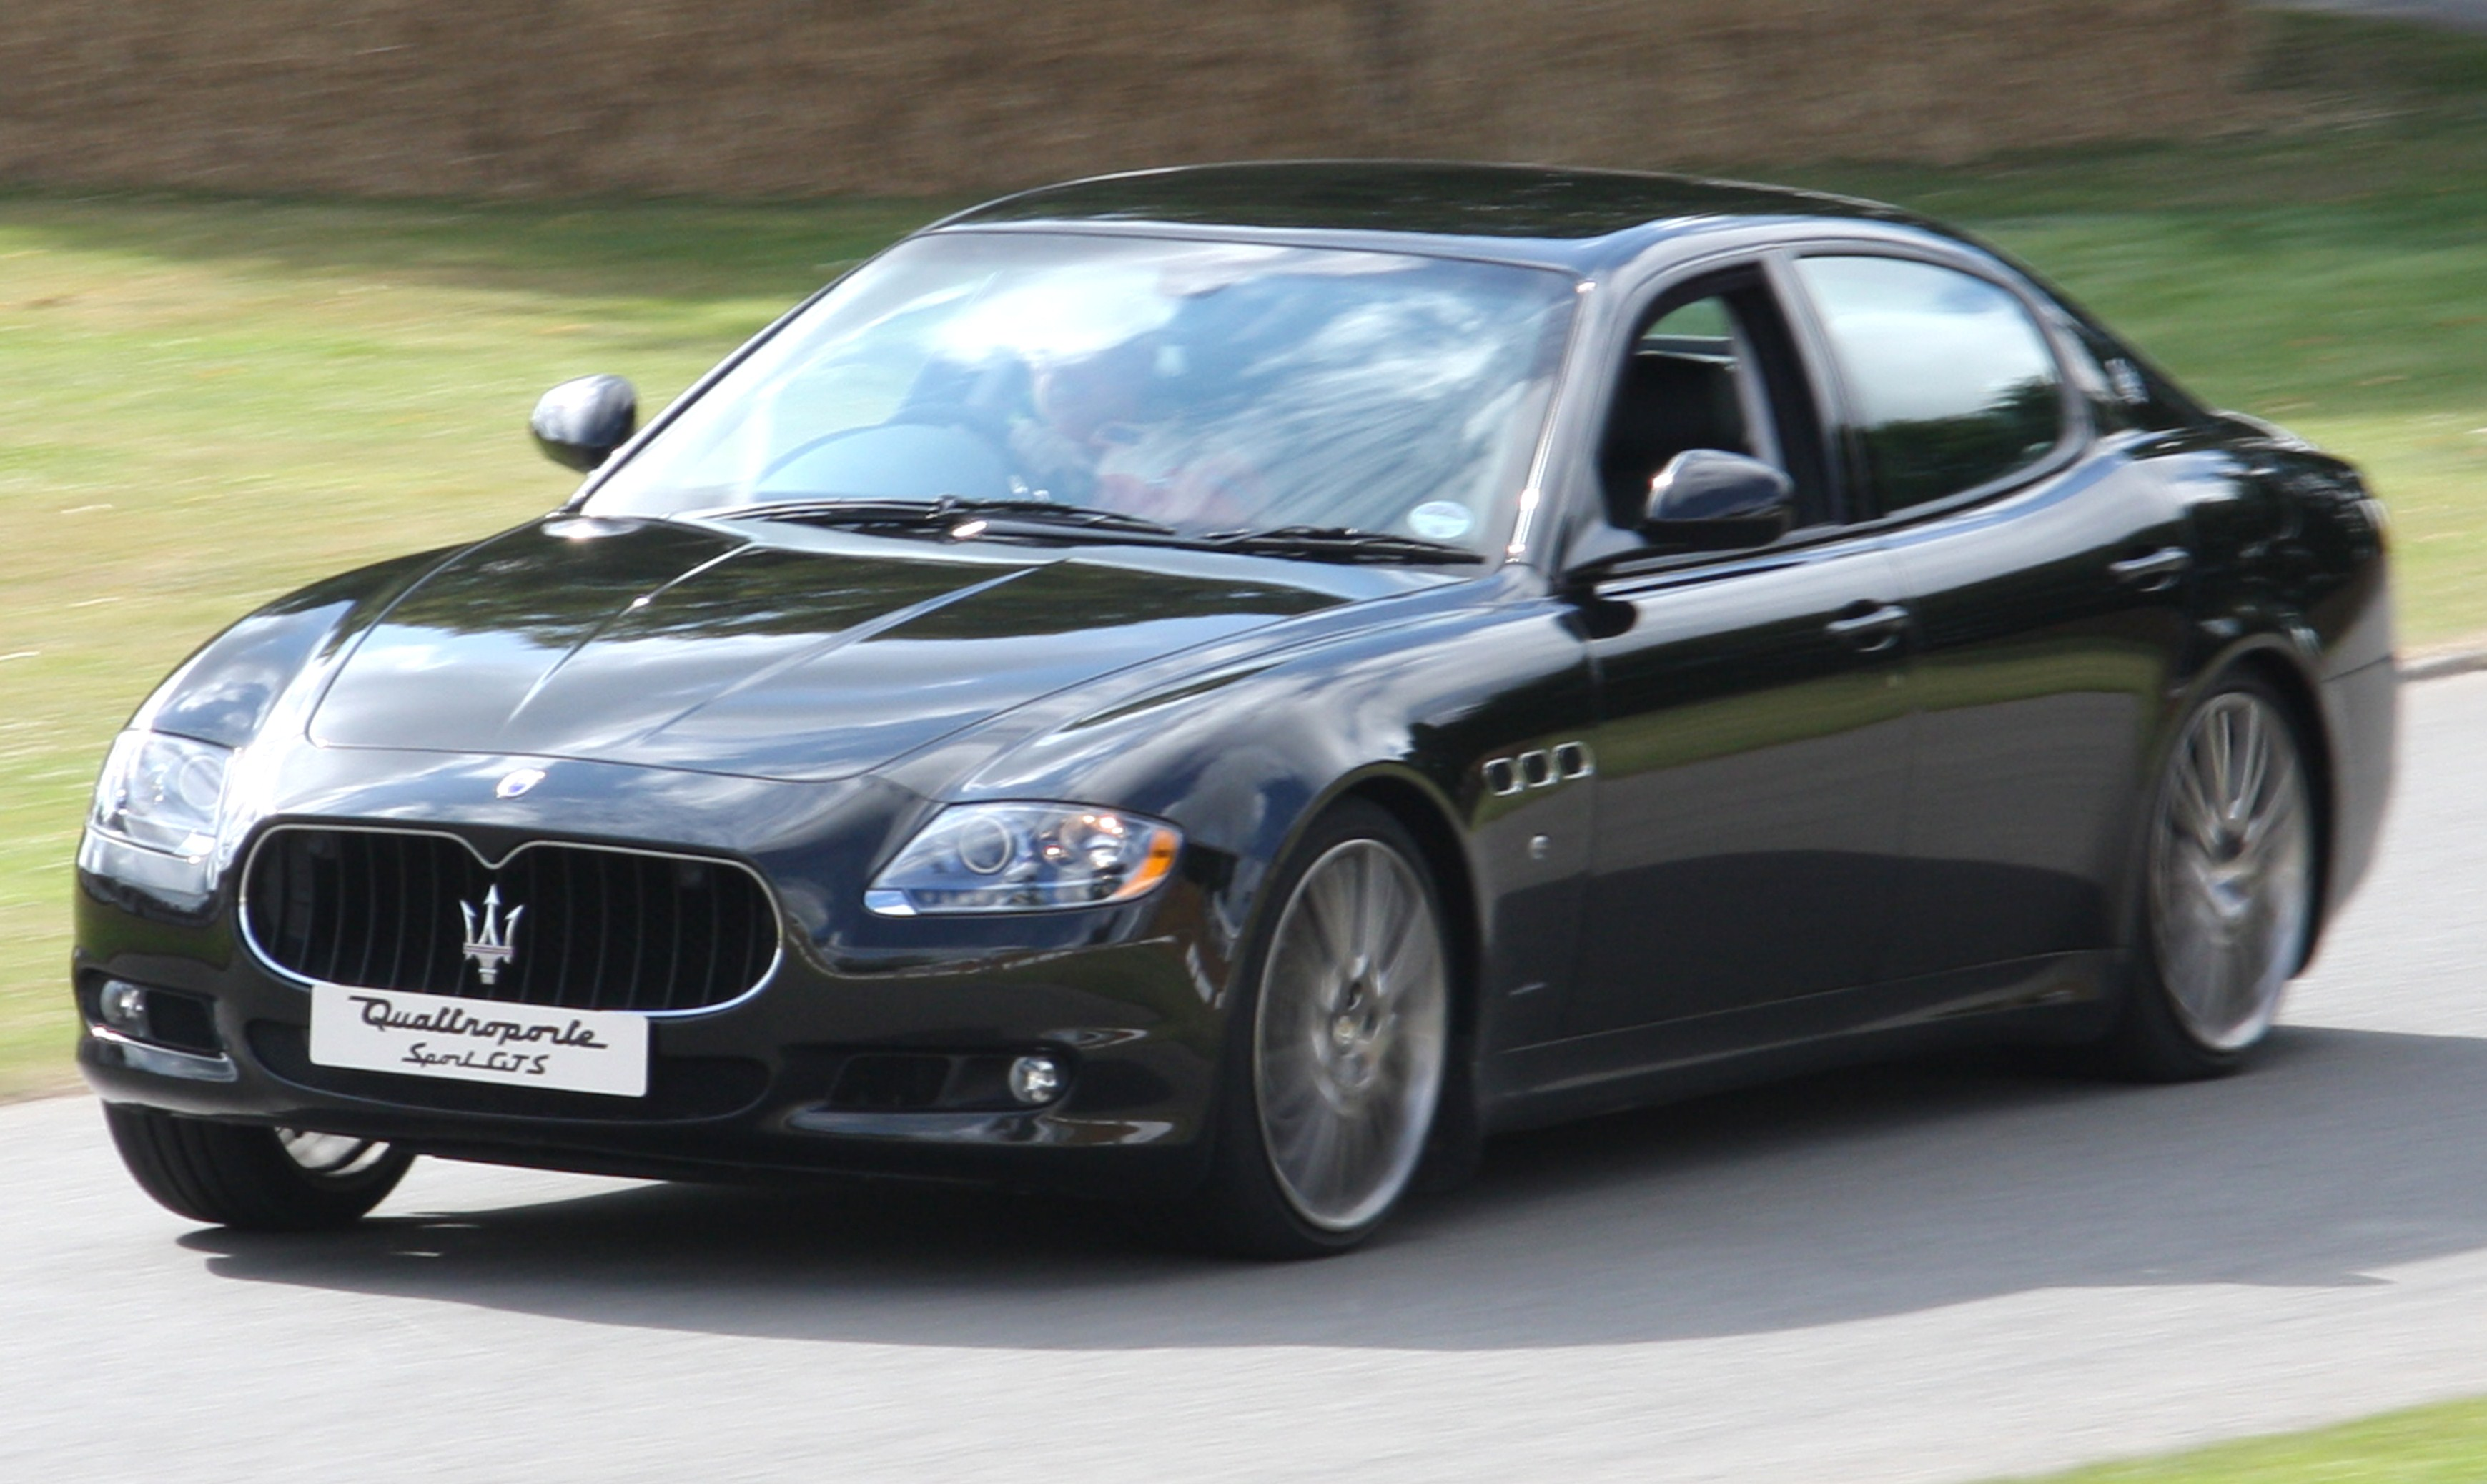 https://upload.wikimedia.org/wikipedia/commons/d/d5/2009_Maserati_Quattroporte_Sport_GT_S.jpg